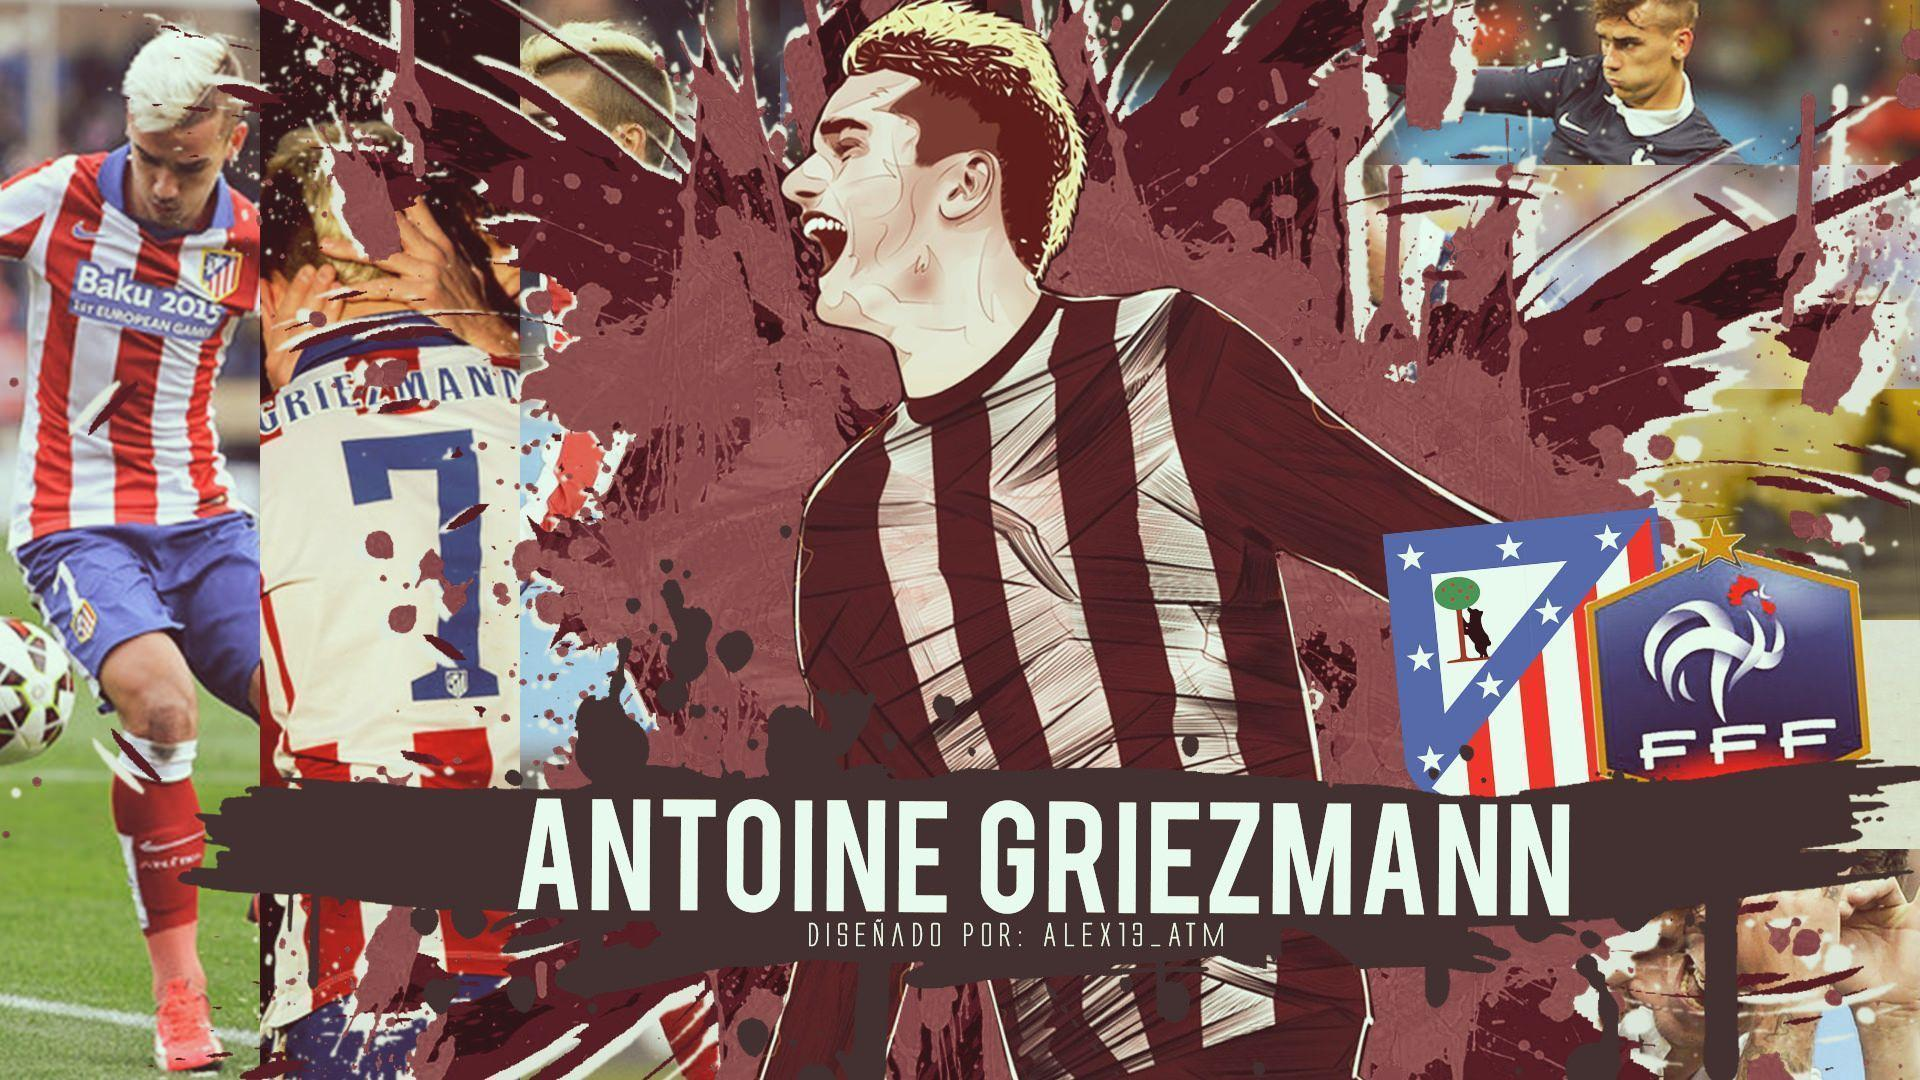 Antoine Griezmann Atletico Madrid Wallpaper | Football Wallpapers ...